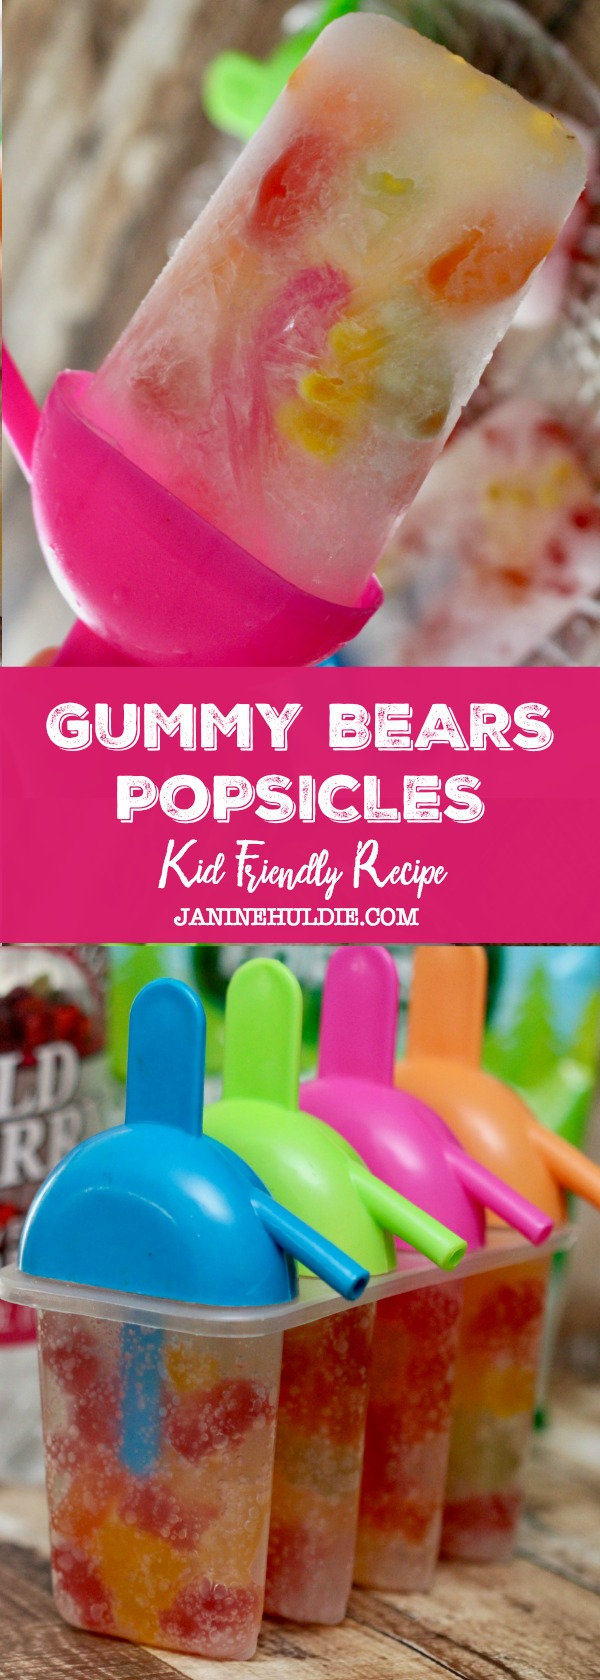 Gummy Bears Popsicle Recipe